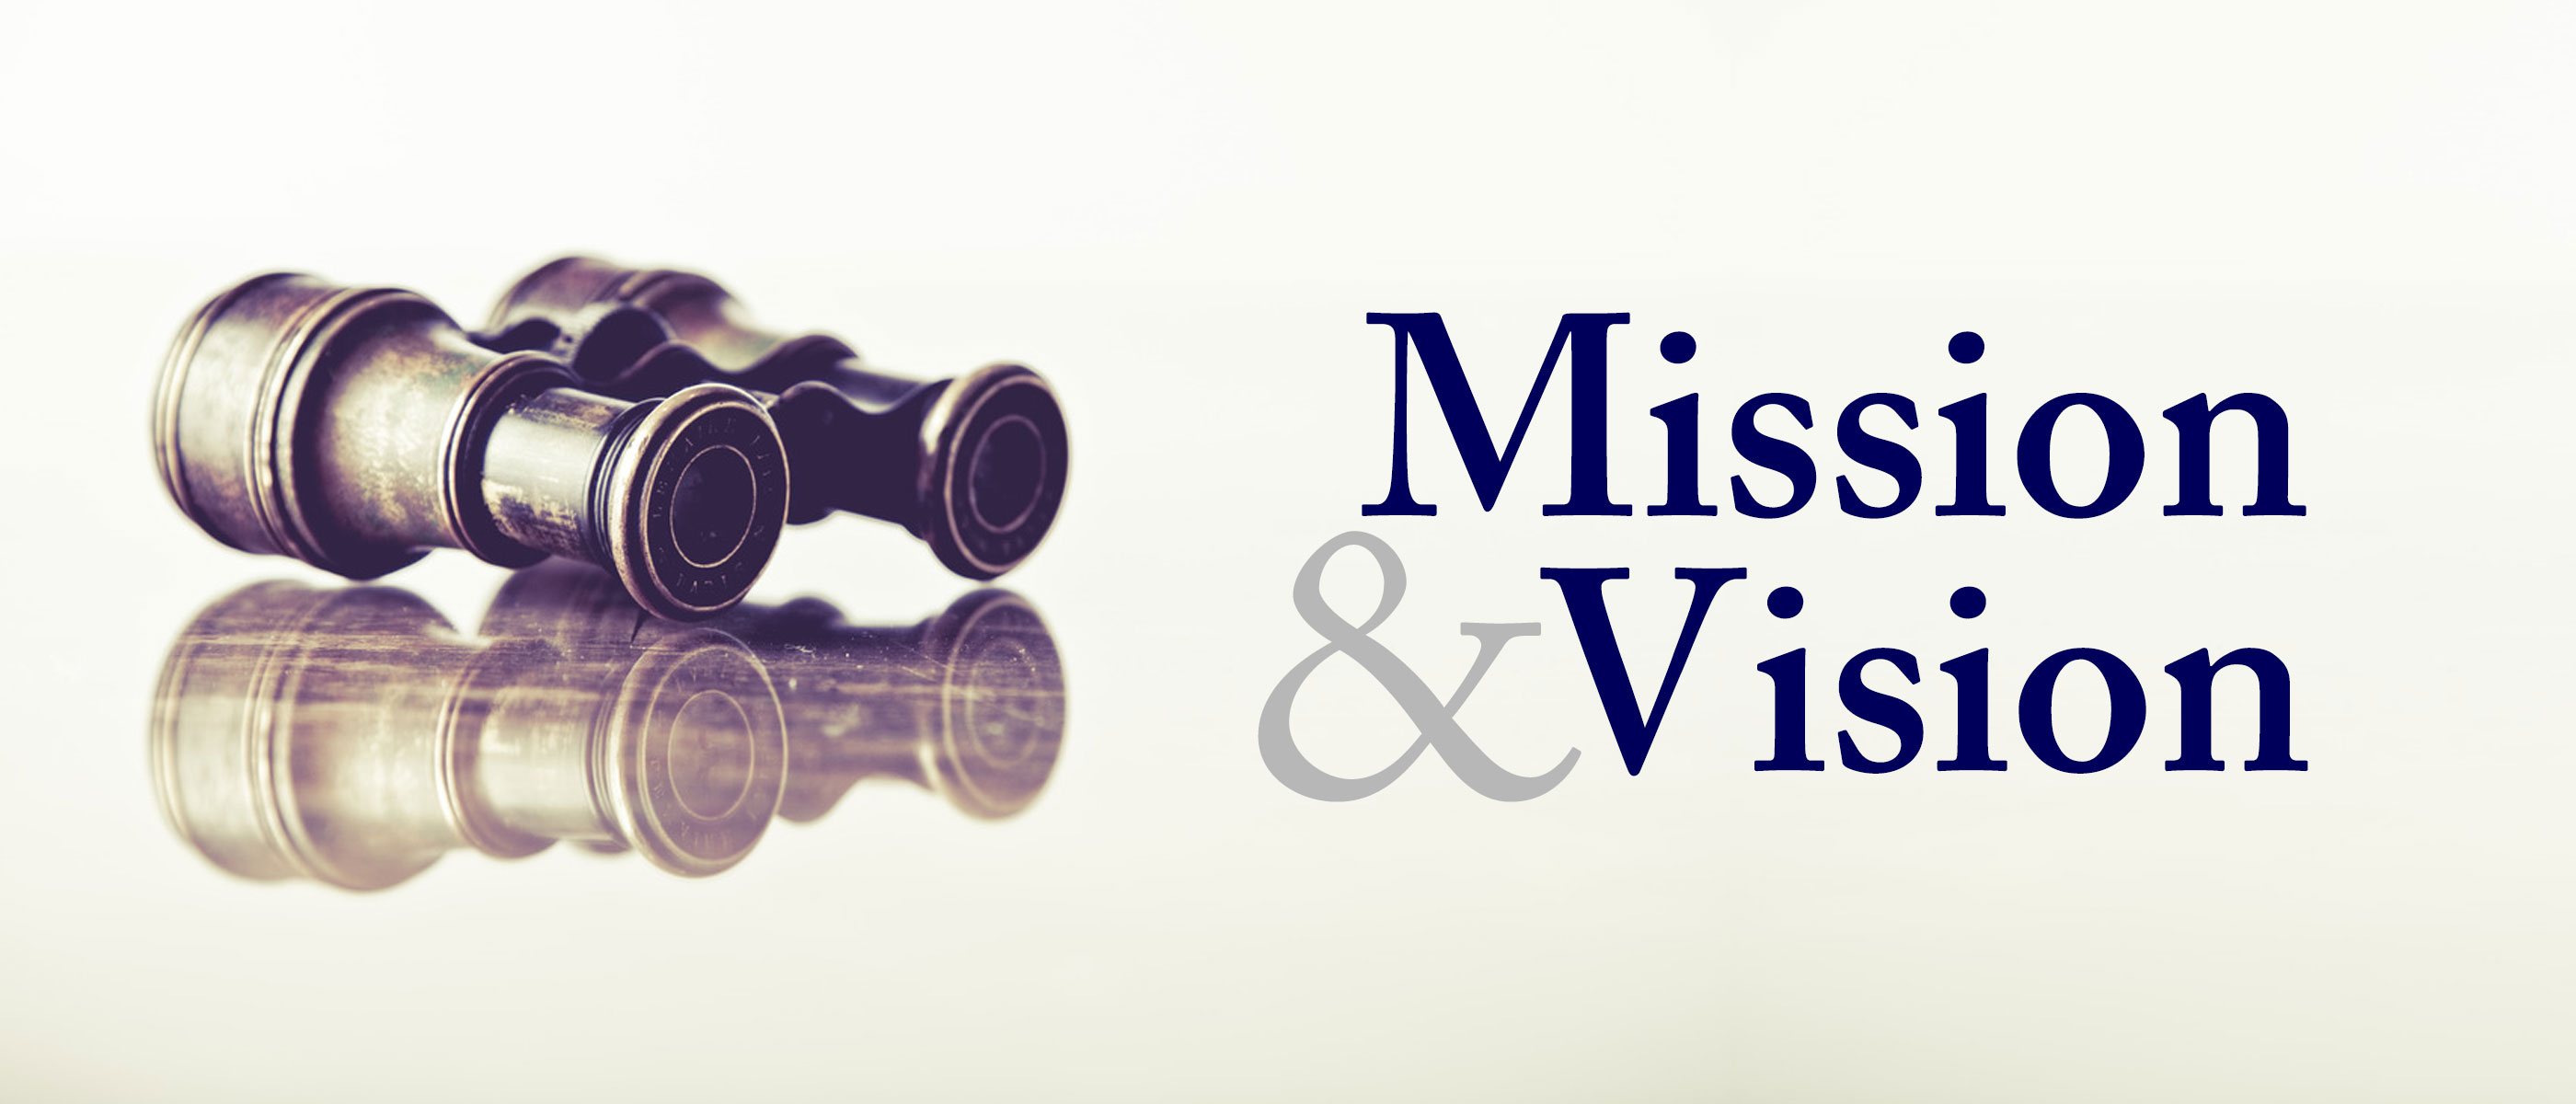 analysis of the mission and vision Vision, mission and values [] vision: defines the desired or intended future state of a specific organization or enterprise in terms of its fundamental objective and/or strategic direction.